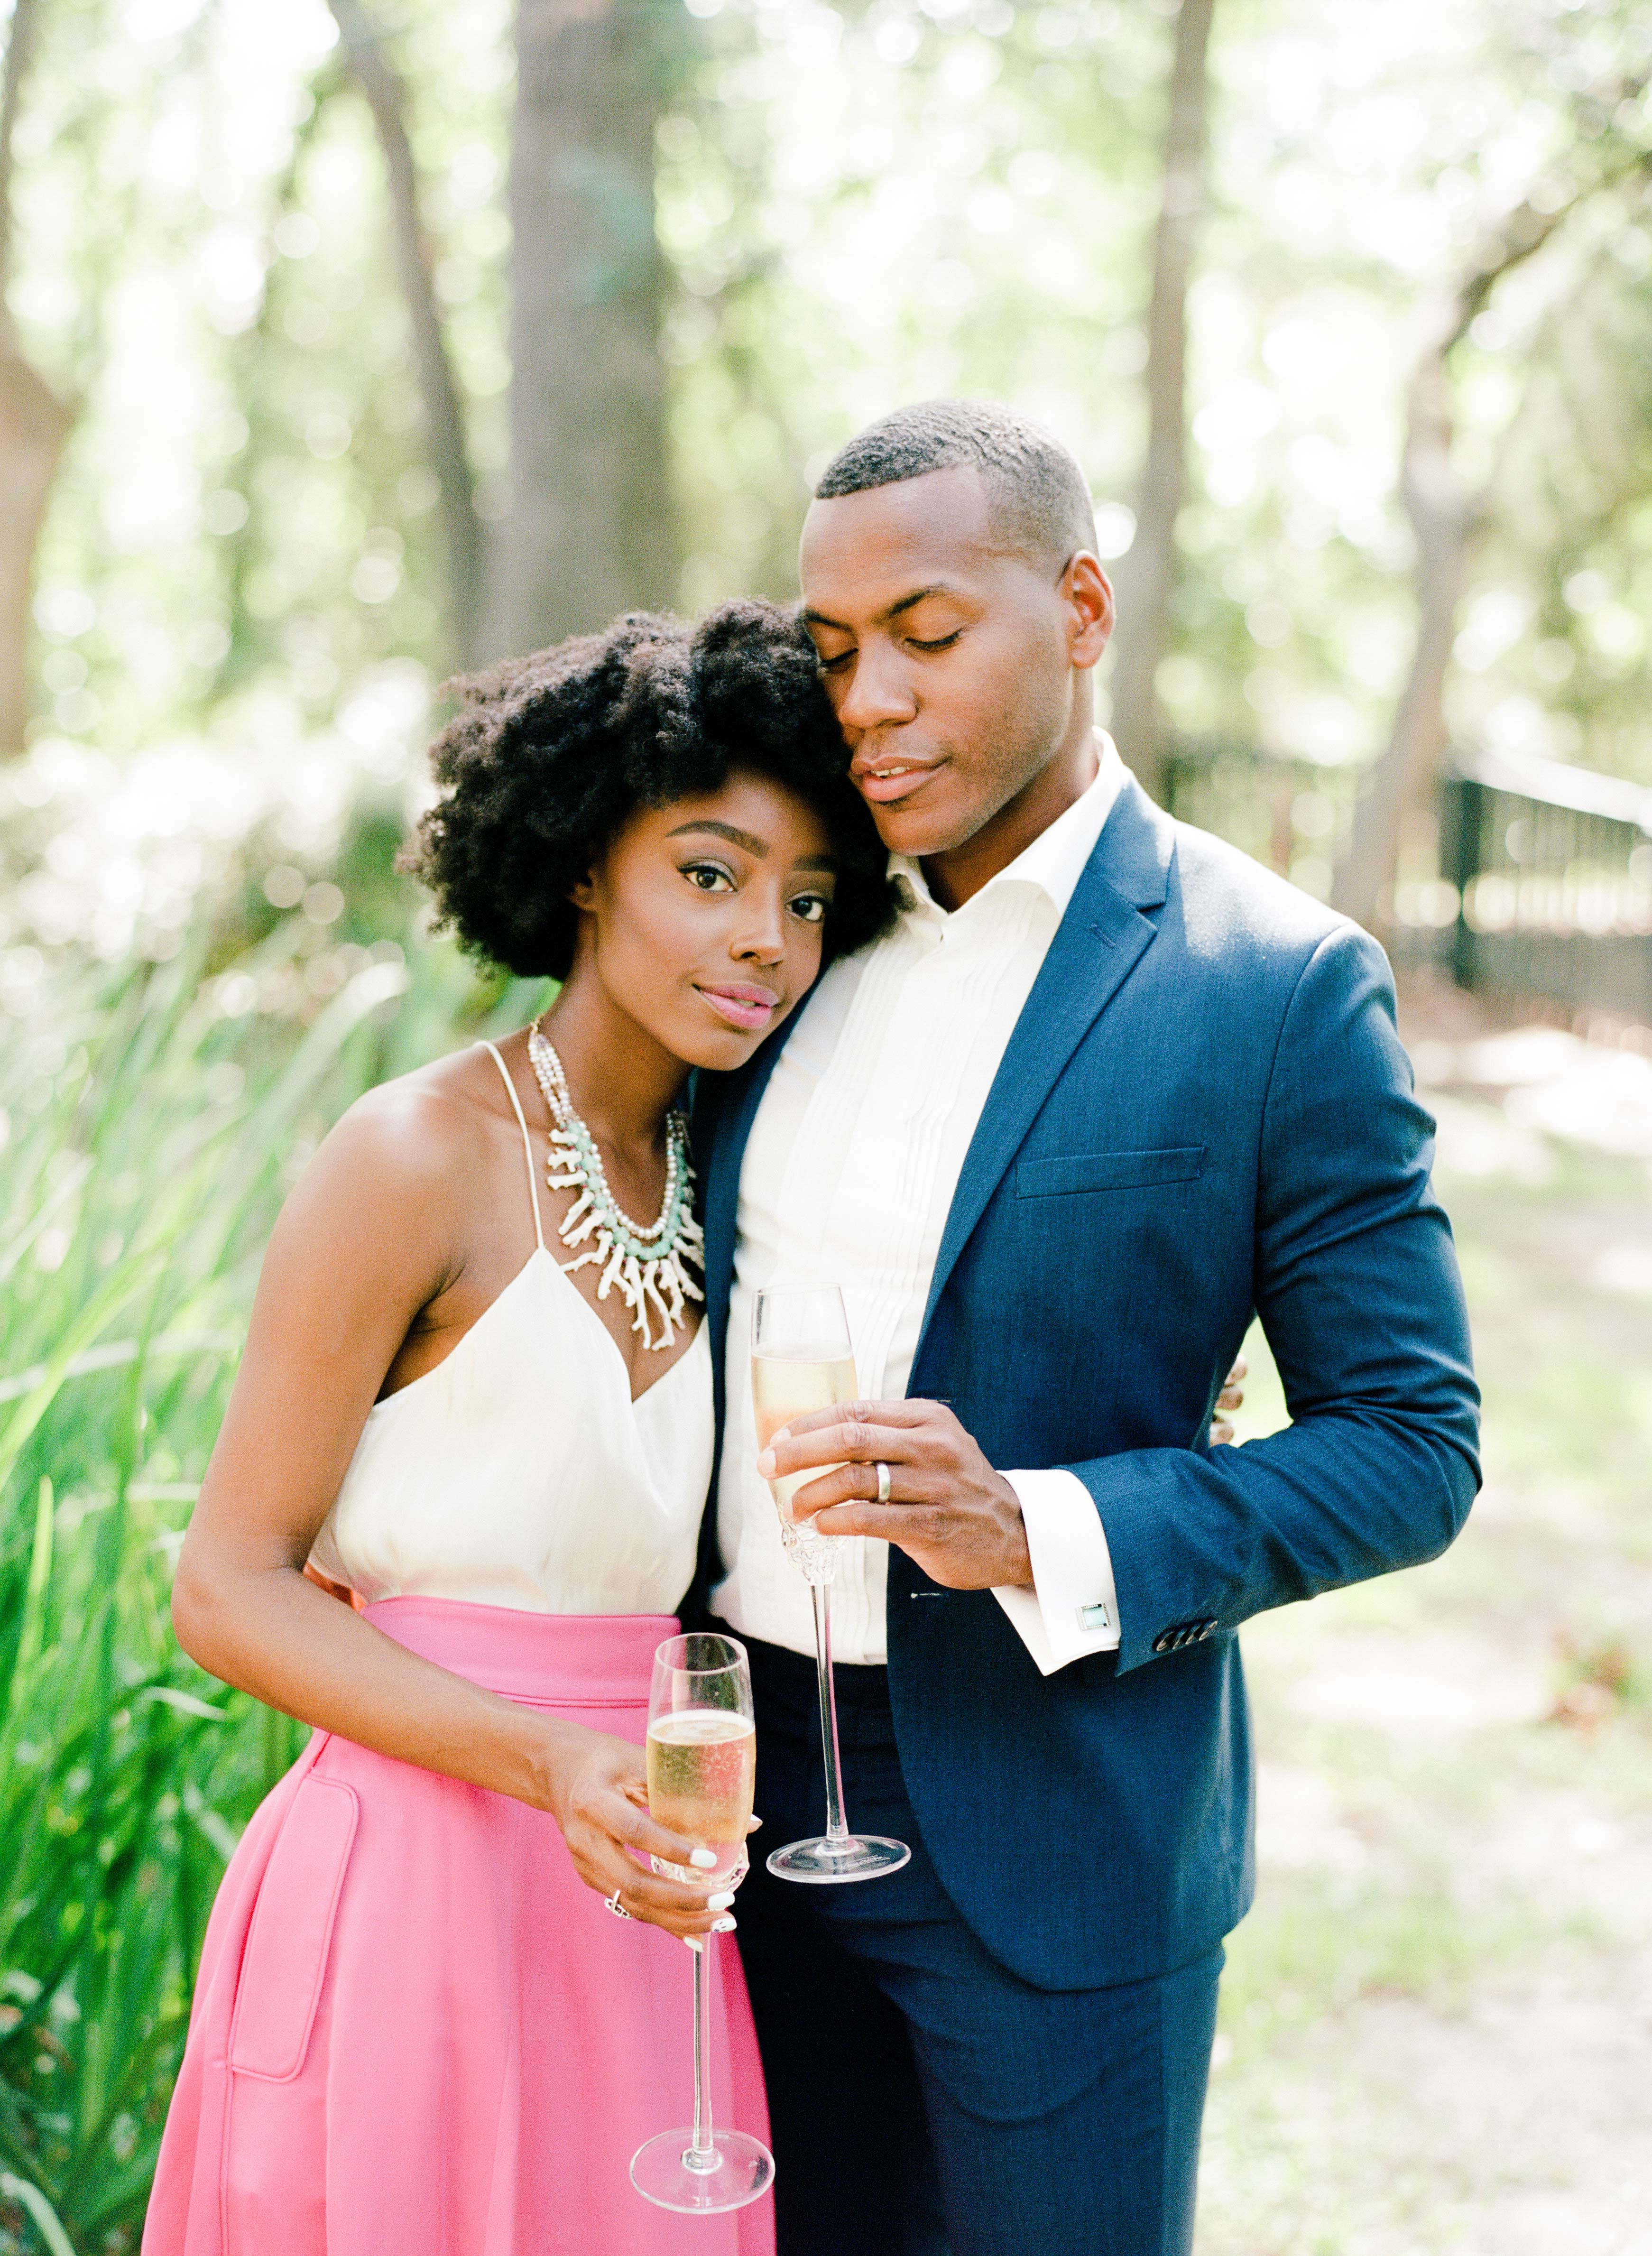 Four Conversations Every Couple Should Have Before Getting Engaged